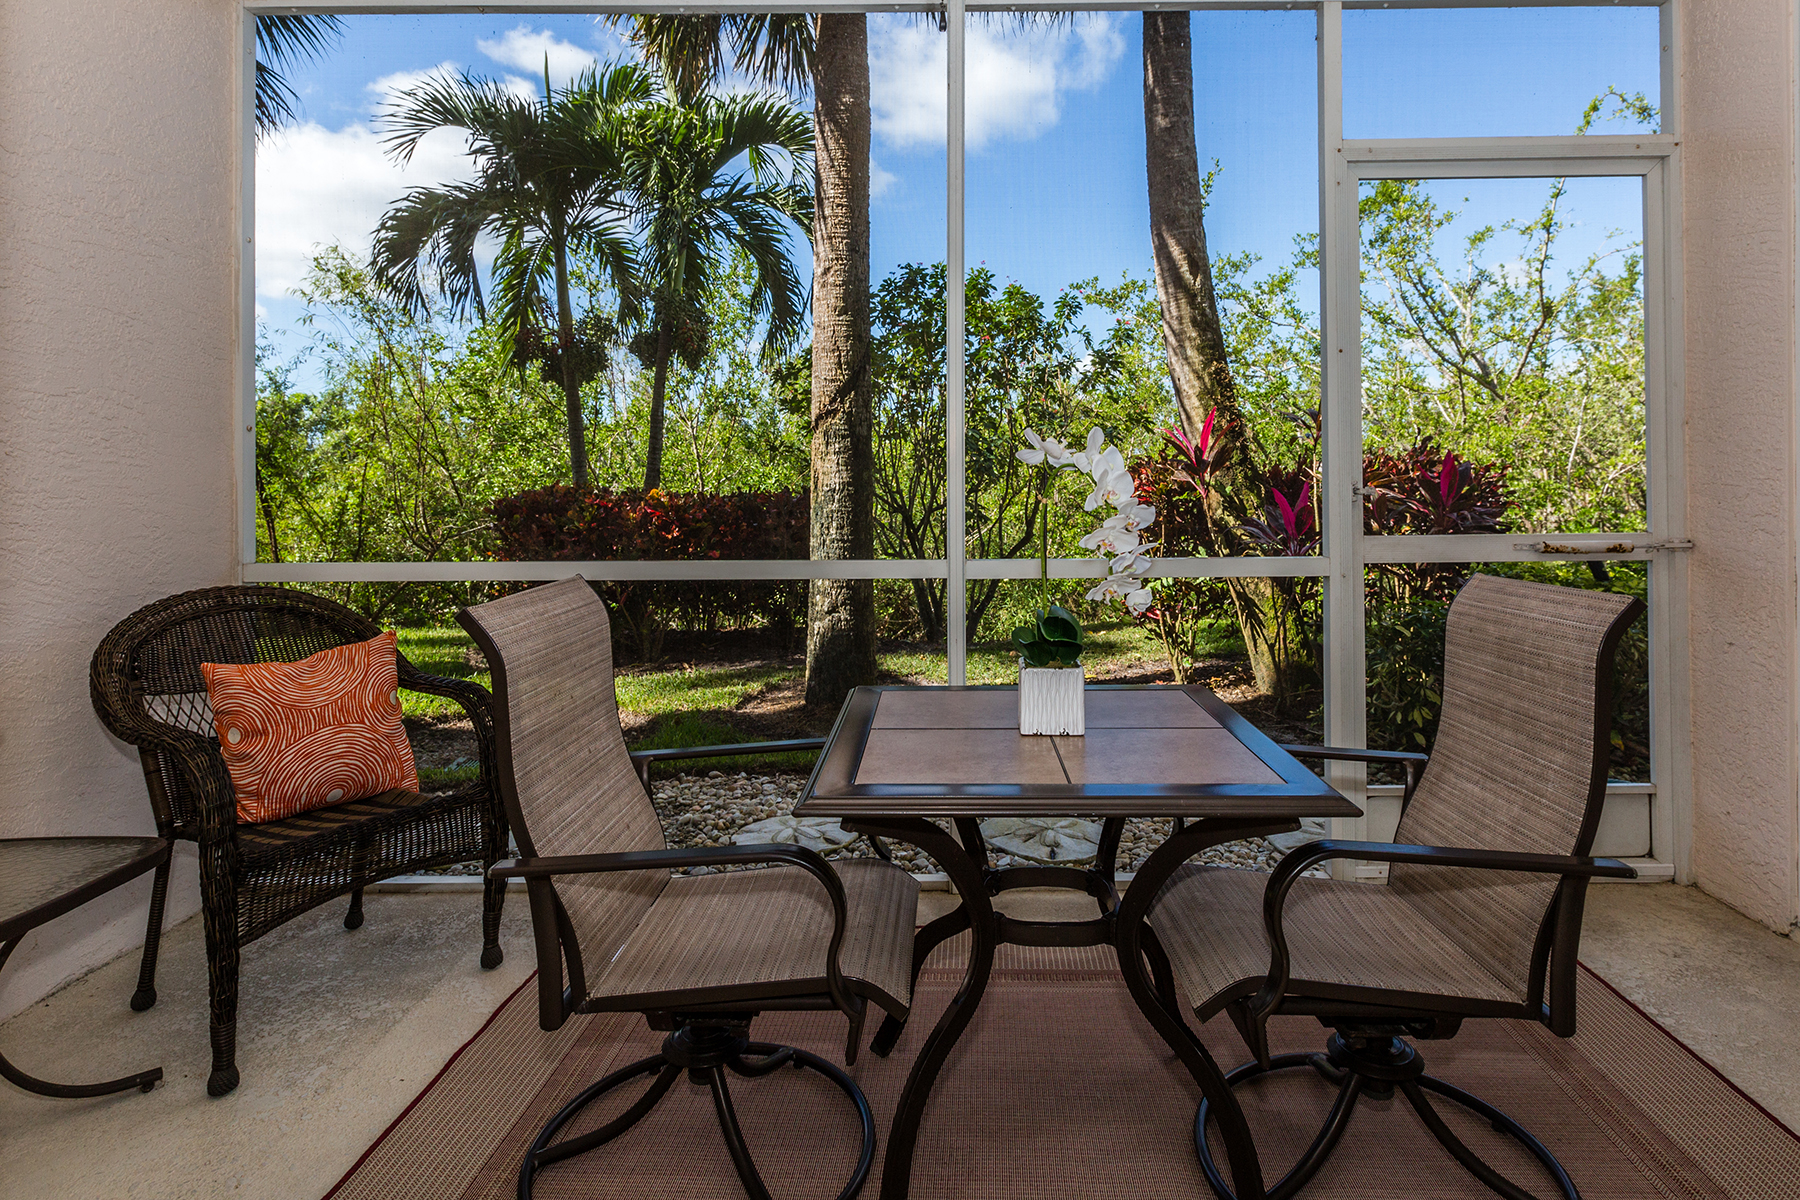 Condominium for Sale at FIDDLERS CREEK 8325 Whisper Trace Way 103, Naples, Florida 34114 United States